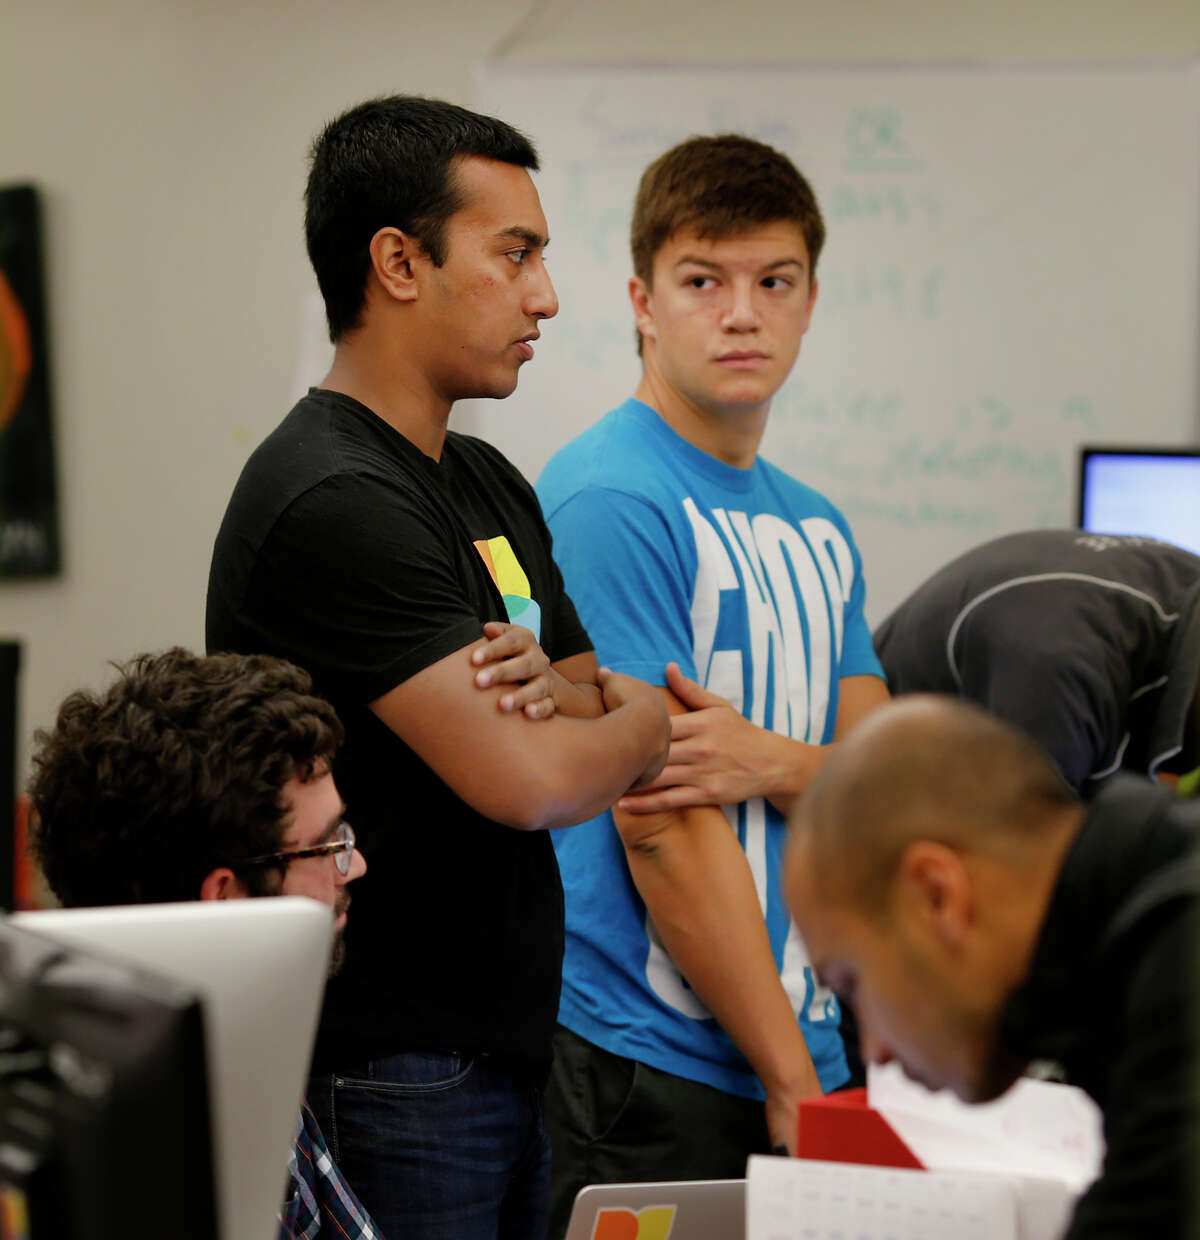 Pablo Lleras (right) listens as Pixlee co-founder Awad Sayeed talks during a meeting. Pixlee uses a note-taking platform from Do, which has received funding from Salesforce.com.